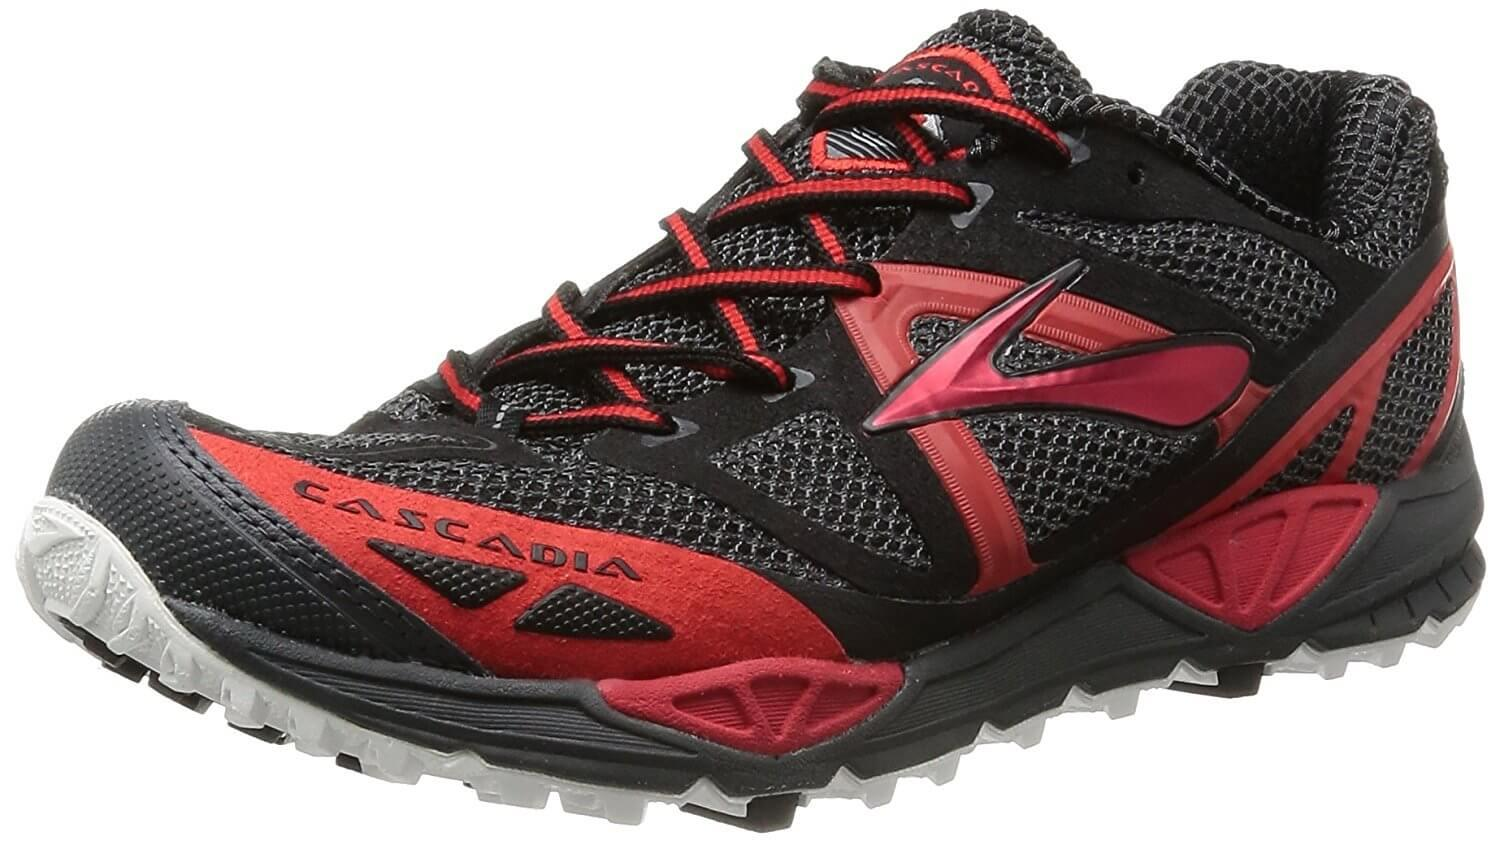 A three quarter perspective of the Brooks Cascadia 9 running shoes